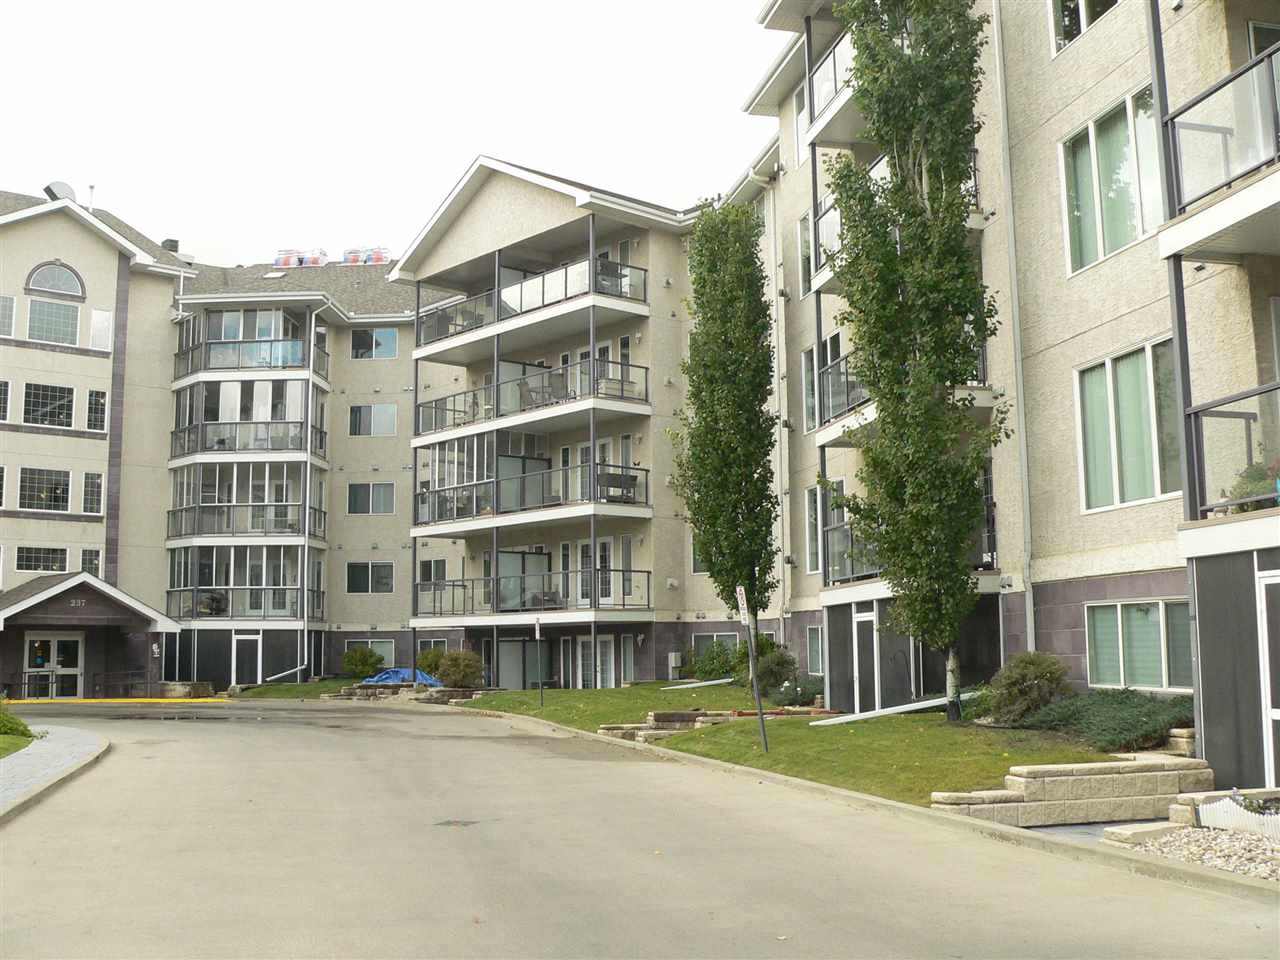 18+ Adult building.  In the heart of Sienna Pt., this open practical floor plan designed with privacy in mind is a 2 bed. 2 bath condo featuring:  Large spacious open plan kitchen with white cabinetry, adjacent living rm. with gas fireplace, patio doors to a covered deck, M. Bed. with 3 pc. en-suite & wi closet.  Opposite side, has 2nd bedroom, full bath & laundry/storage room.  All this with central air conditioning & situated on the 3thd floor overlooking center courtyard.  Comes with heated underground parking stall & storage cage.  Steps to Shopping, Professional Offices, Transit, & Restaurants!  Includes all utilities except electricity.